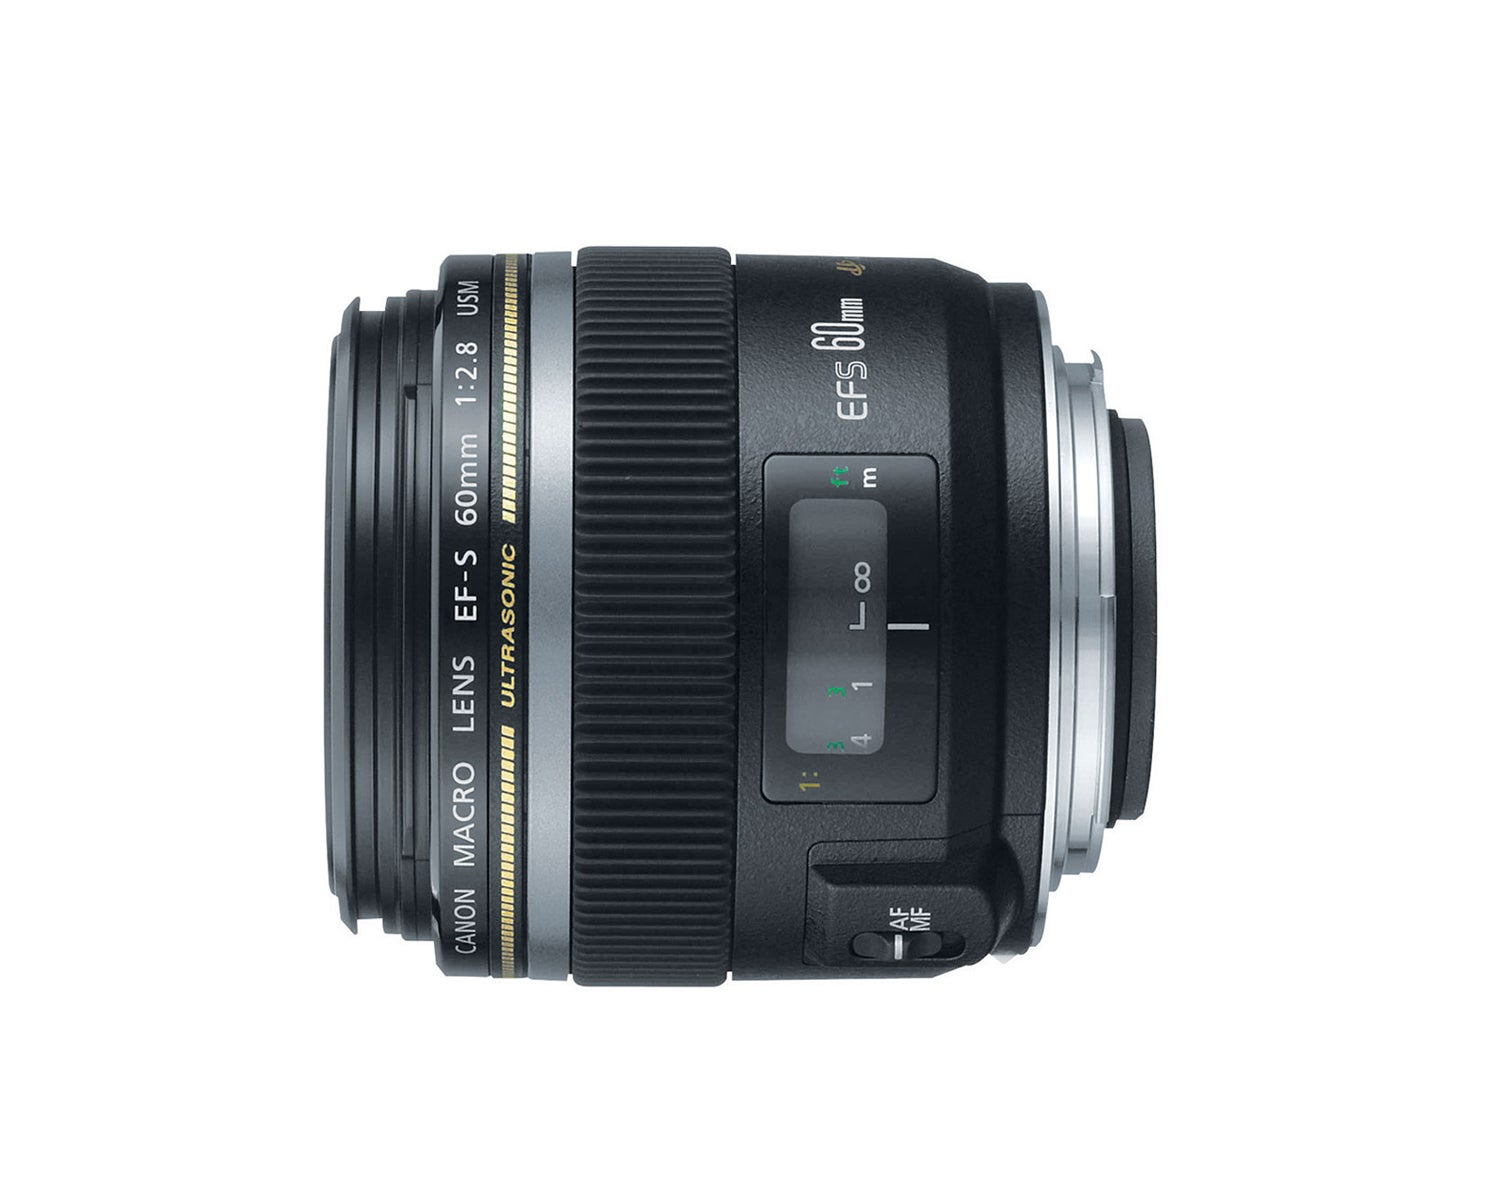 Best canon lenses: Canon EF-S 60mm f/2.8 USM